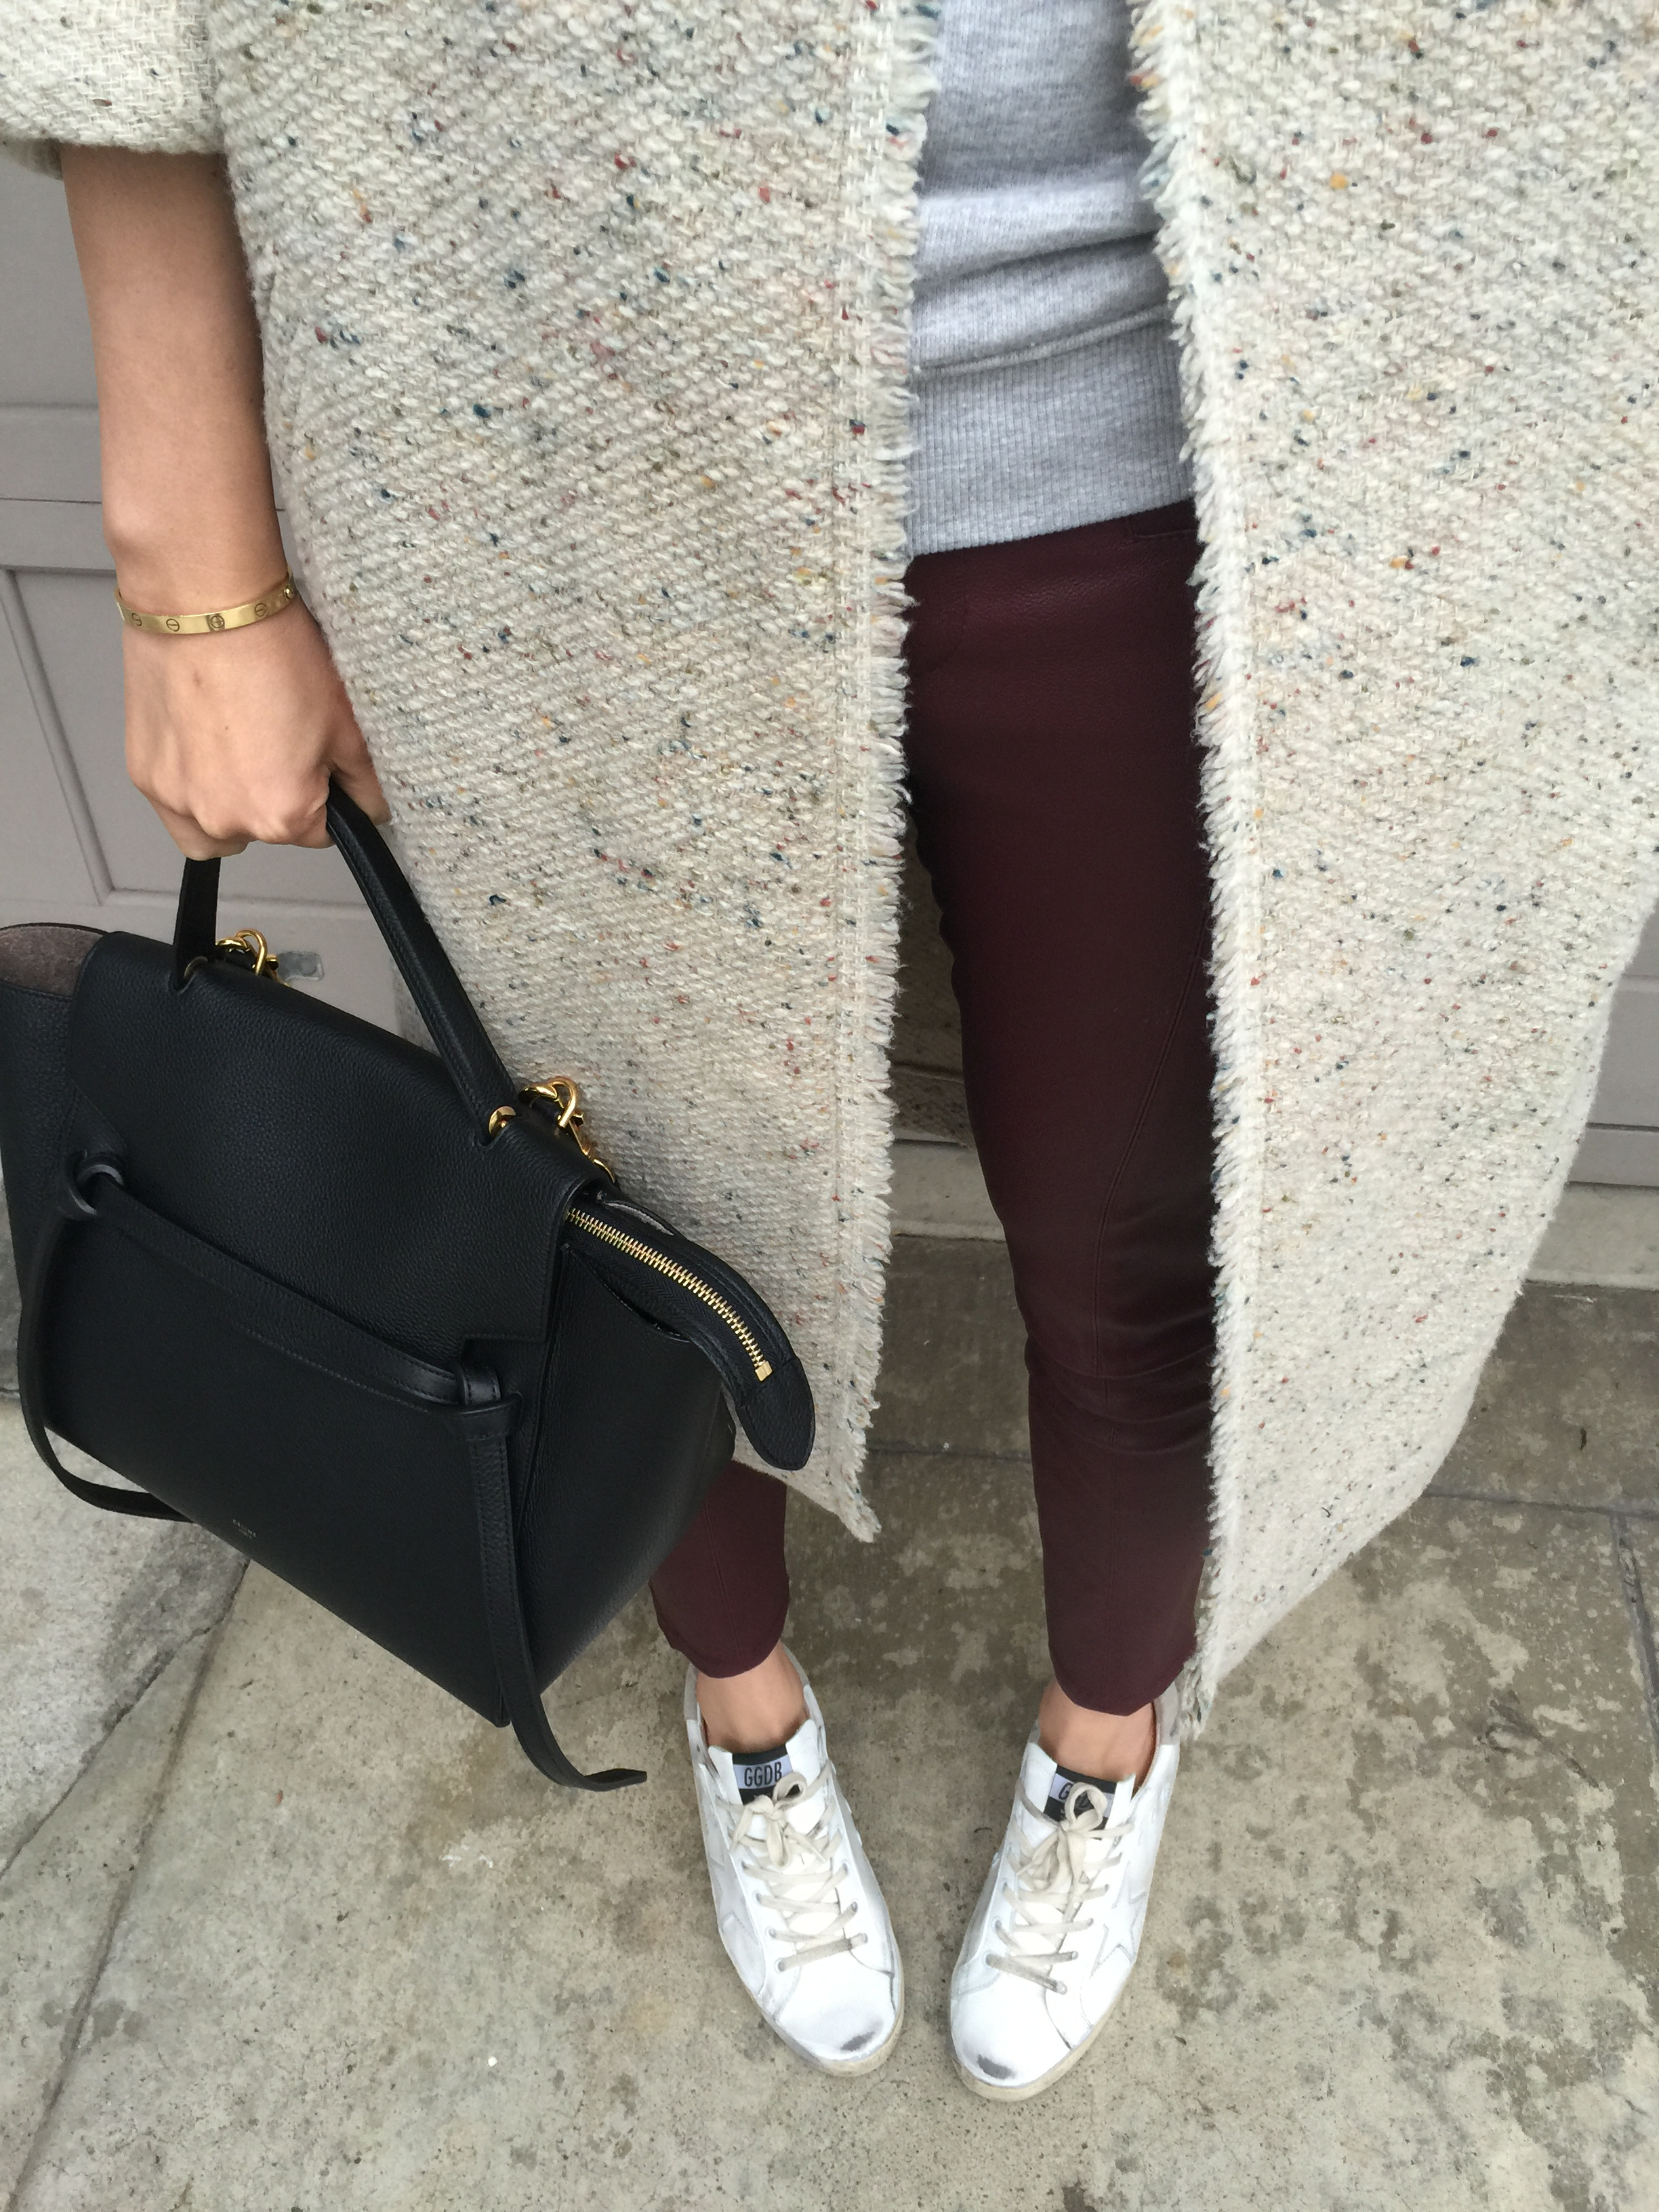 celine trio bag buy - what helen wore today